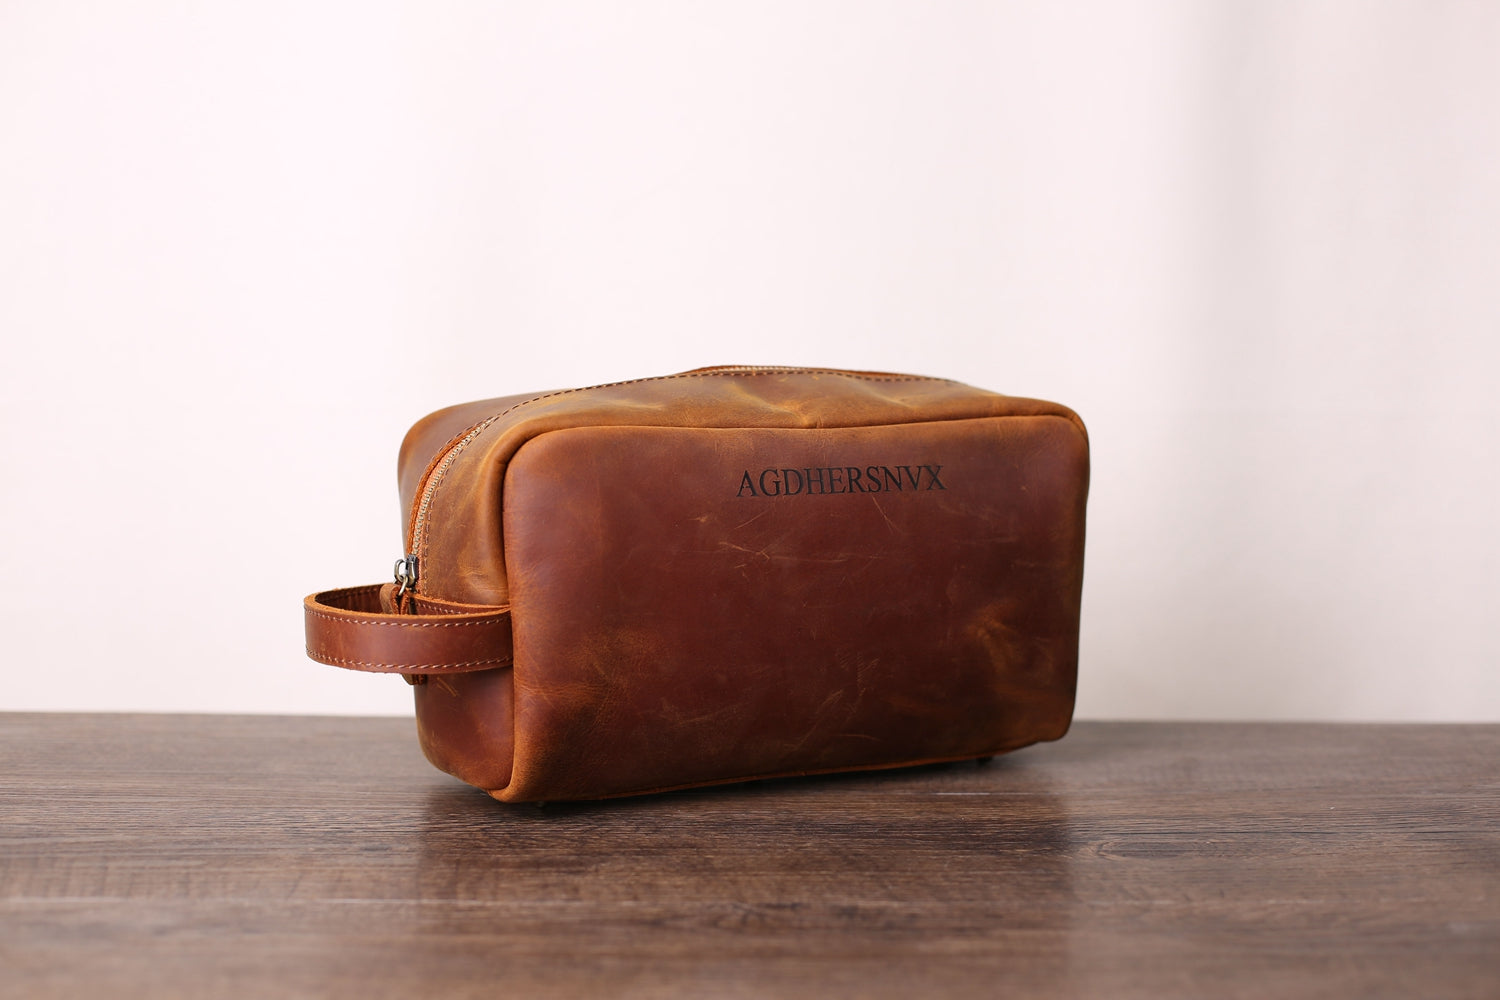 AGDHERSNVX Groomsmen Gift, Personalized Leather Toiletry Bag for Groomsmen, Wedding Gift, Custom Leather Dopp Kit with Monogram, Groomsman Gift - urweddinggifts